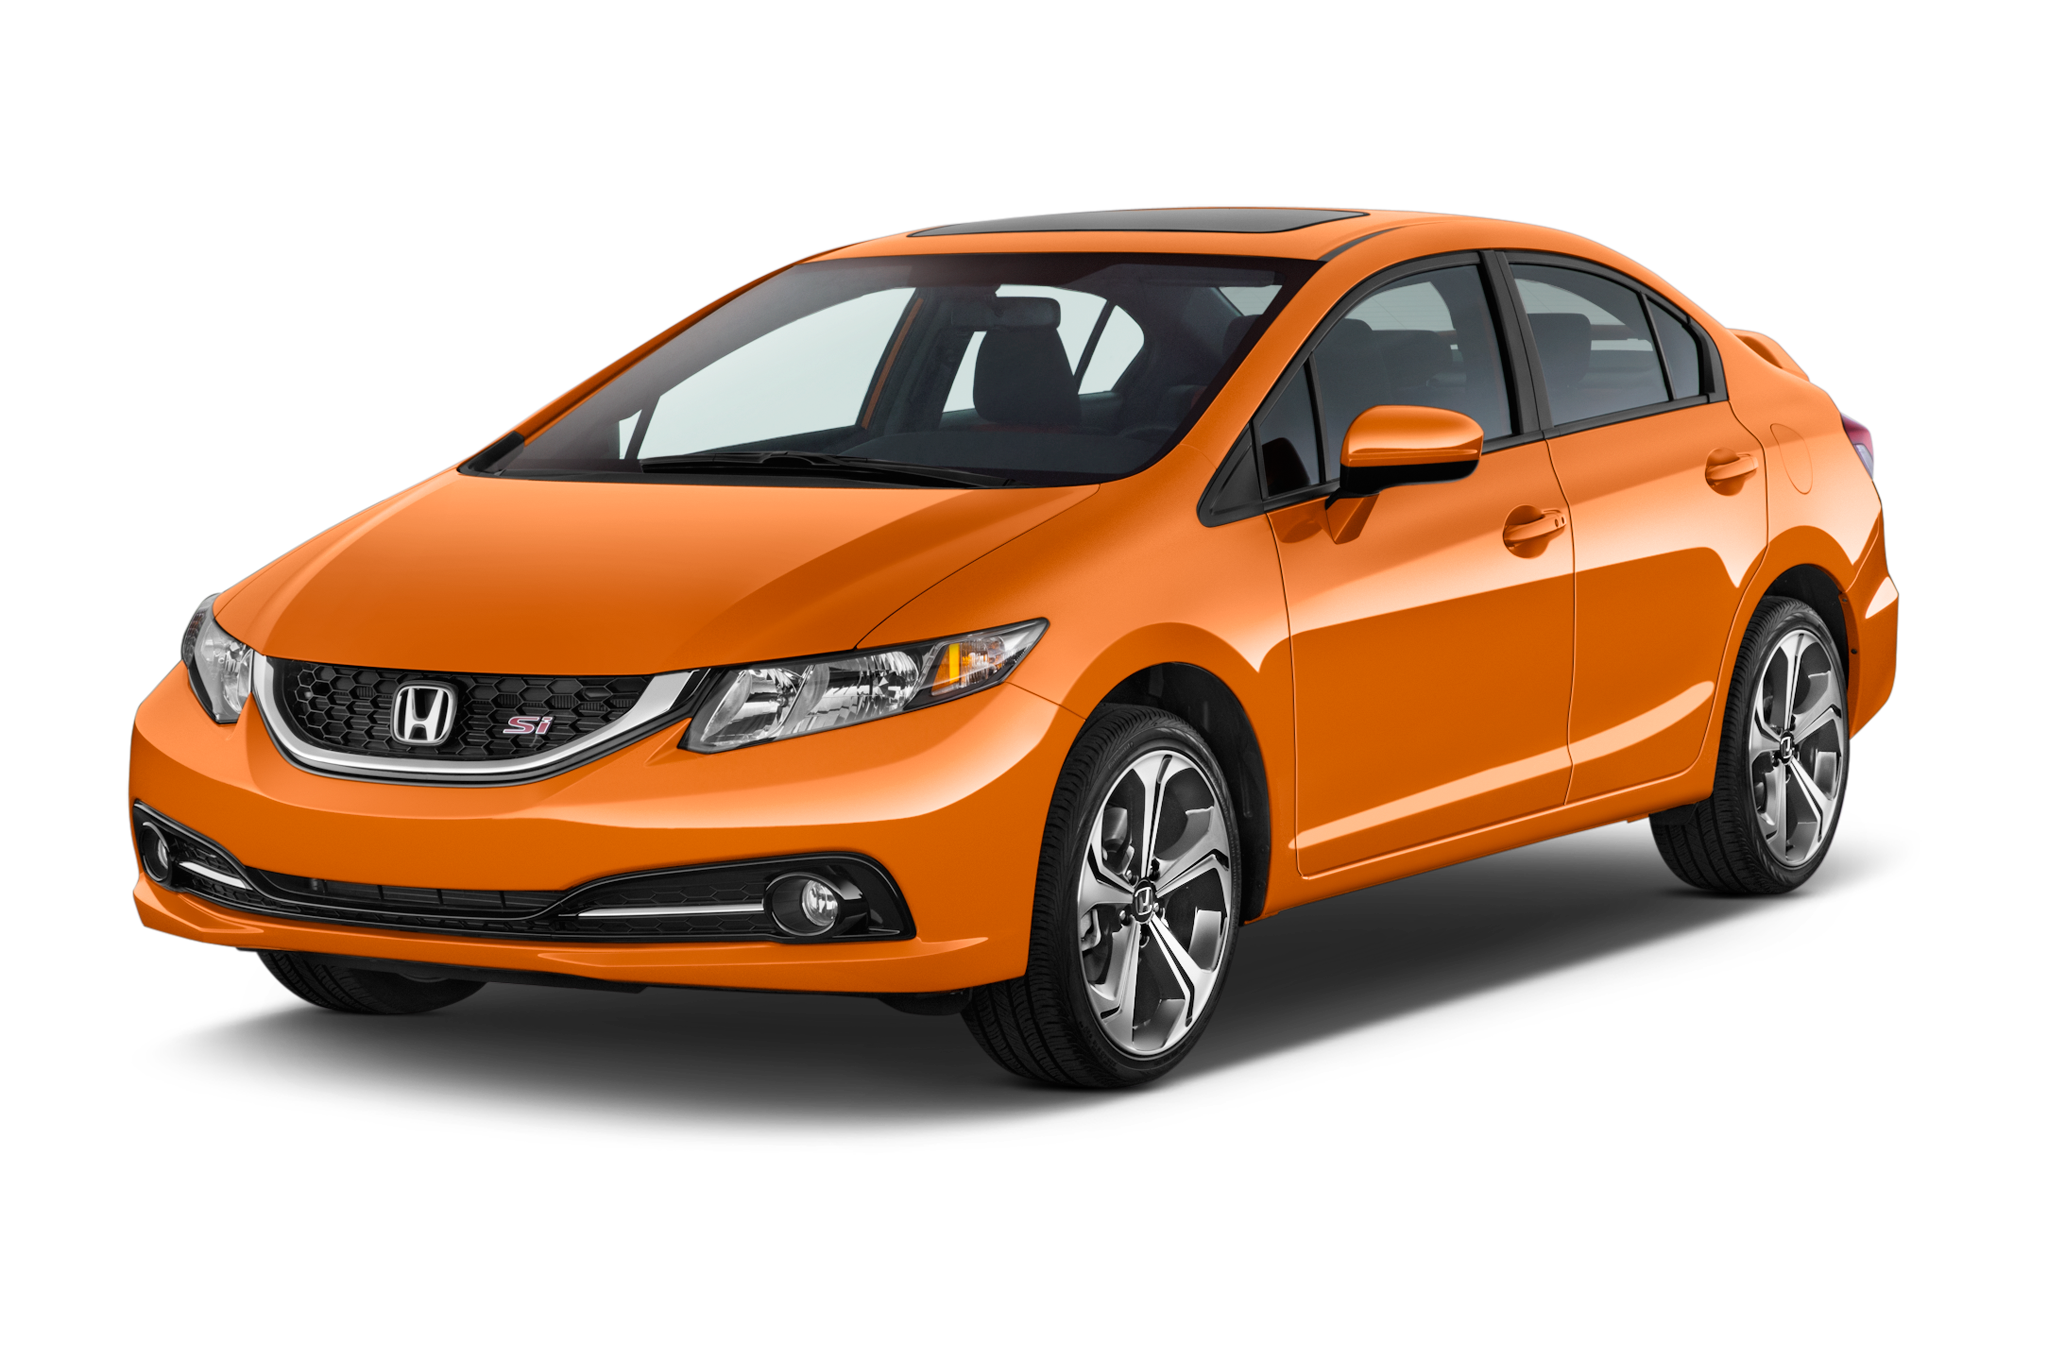 2014 honda civic si w navigation sedan specs and features for Honda civic features